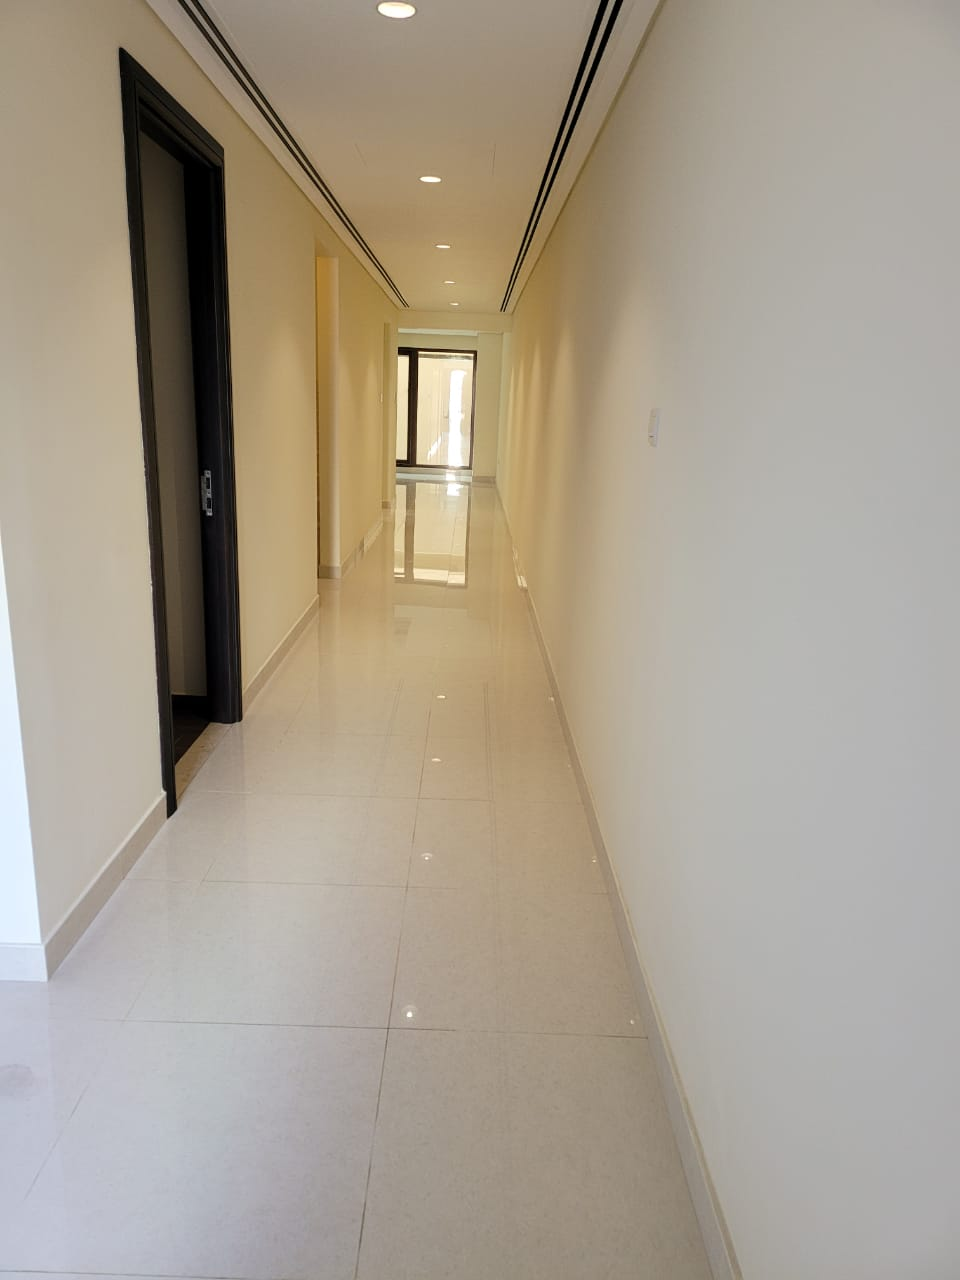 BRAND NEW 4 BDR TOWNHOUSE IN GRAND VIEWS